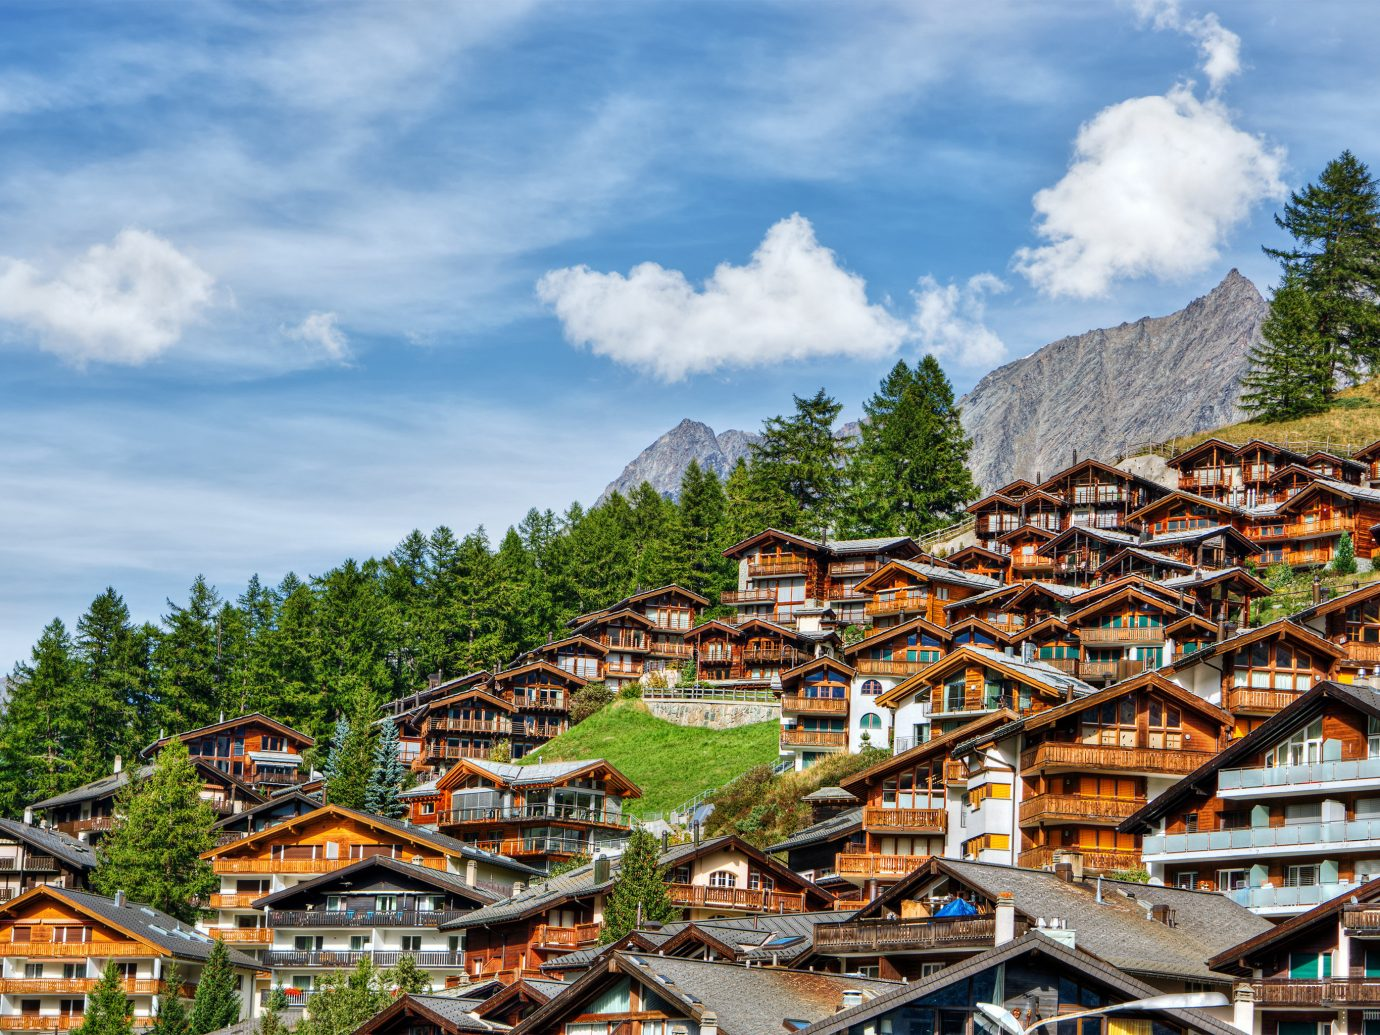 alpine skiing Lakes + Rivers Mountains + Skiing Outdoors + Adventure Trip Ideas sky outdoor mountain village mountainous landforms mountain mountain range tree Village scene hill station cloud rural area City landscape alps plant mount scenery hill tourism roof house elevation several